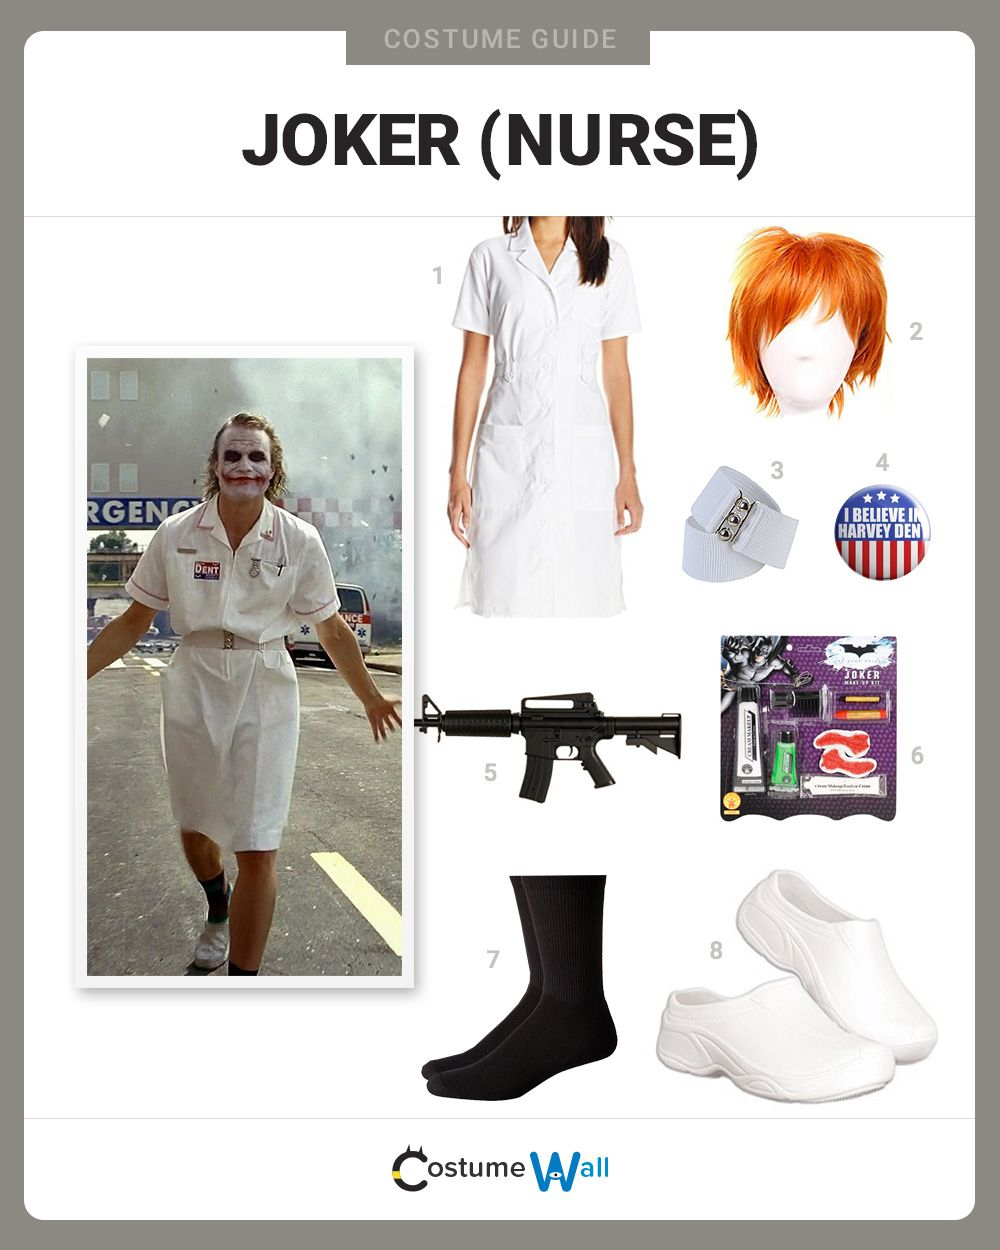 189070d84d785 The best cosplay guide for dressing up like The Joker as a nurse from the  hospital scene in the 2008 Batman movie The Dark Knight.